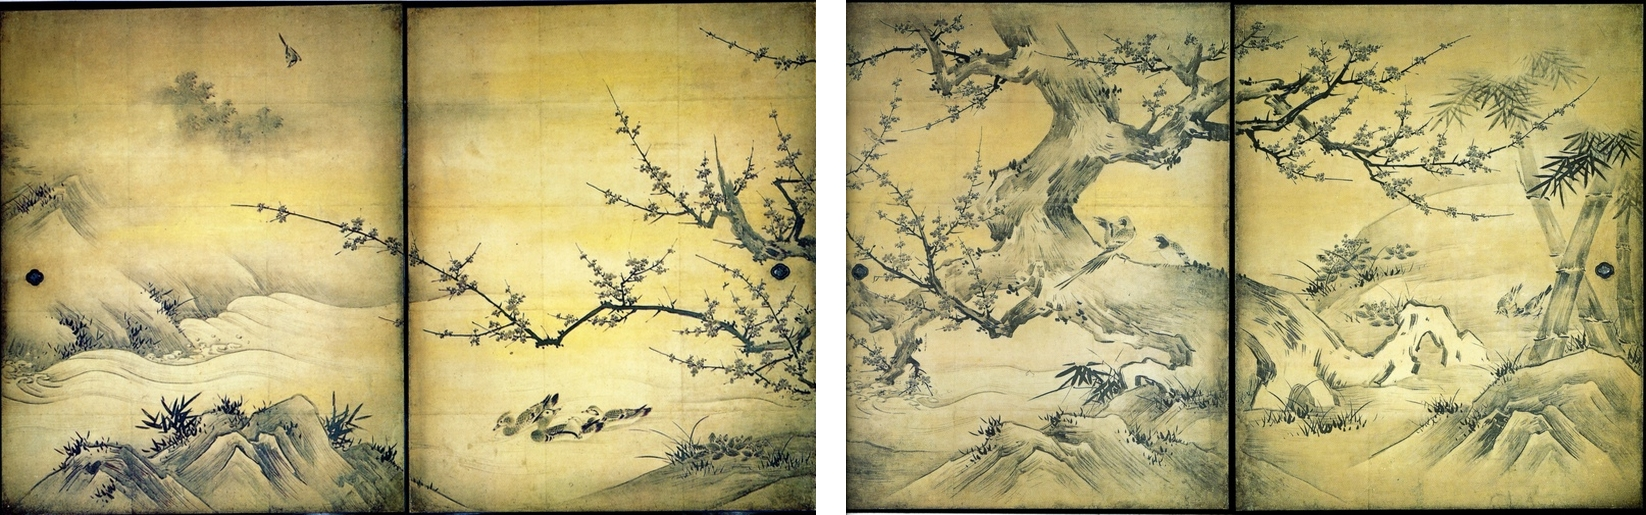 Plum Tree by Kanō Eitoku and his father Kanō Shōei